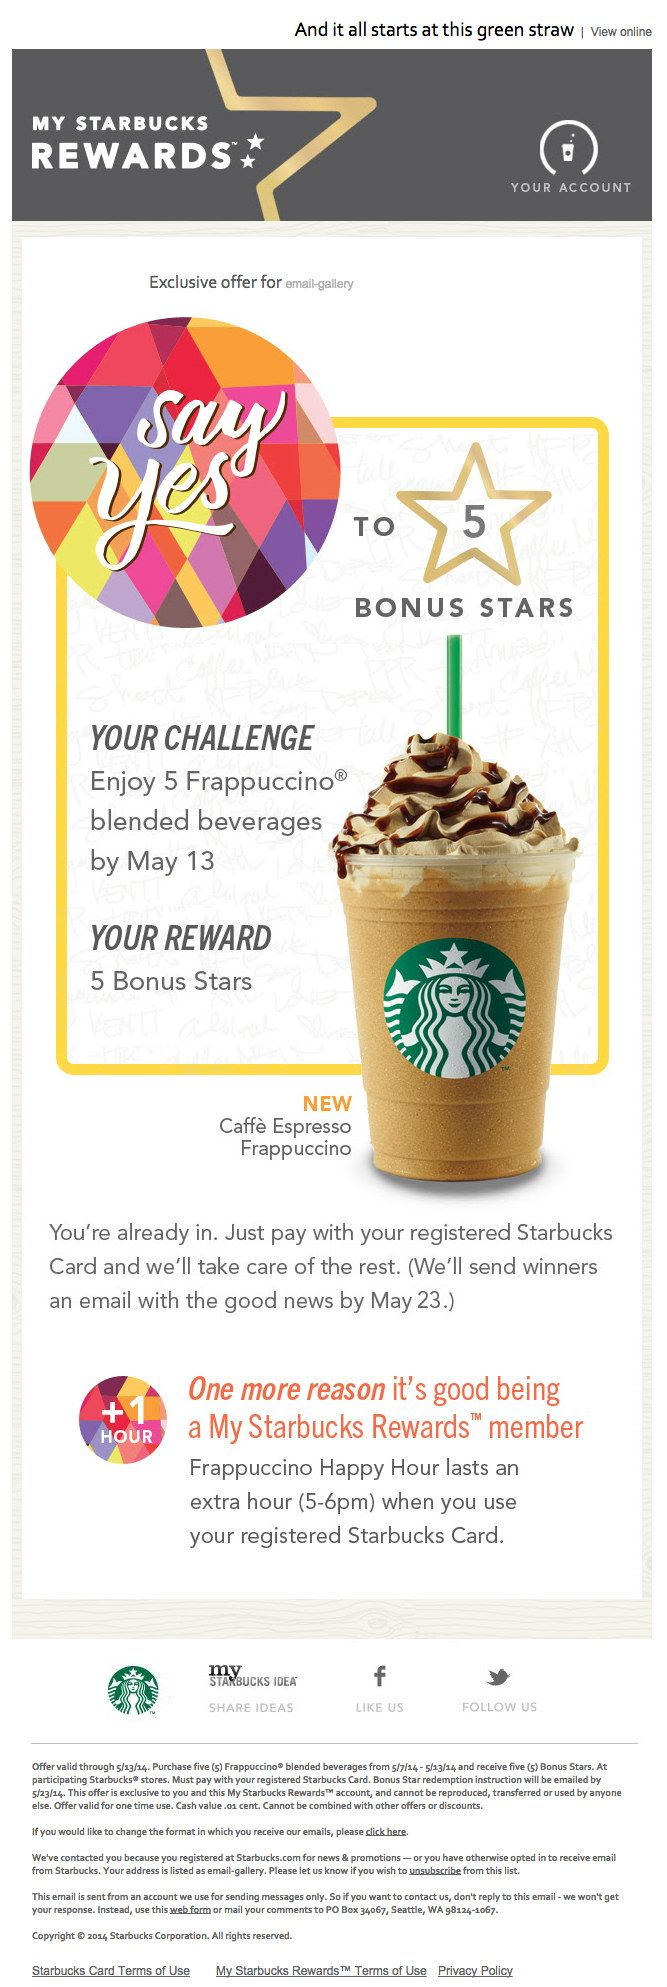 My Starbucks Rewards - Starbucks Coffee. Loyality program email design #email #design #newsletter #emailmarketing